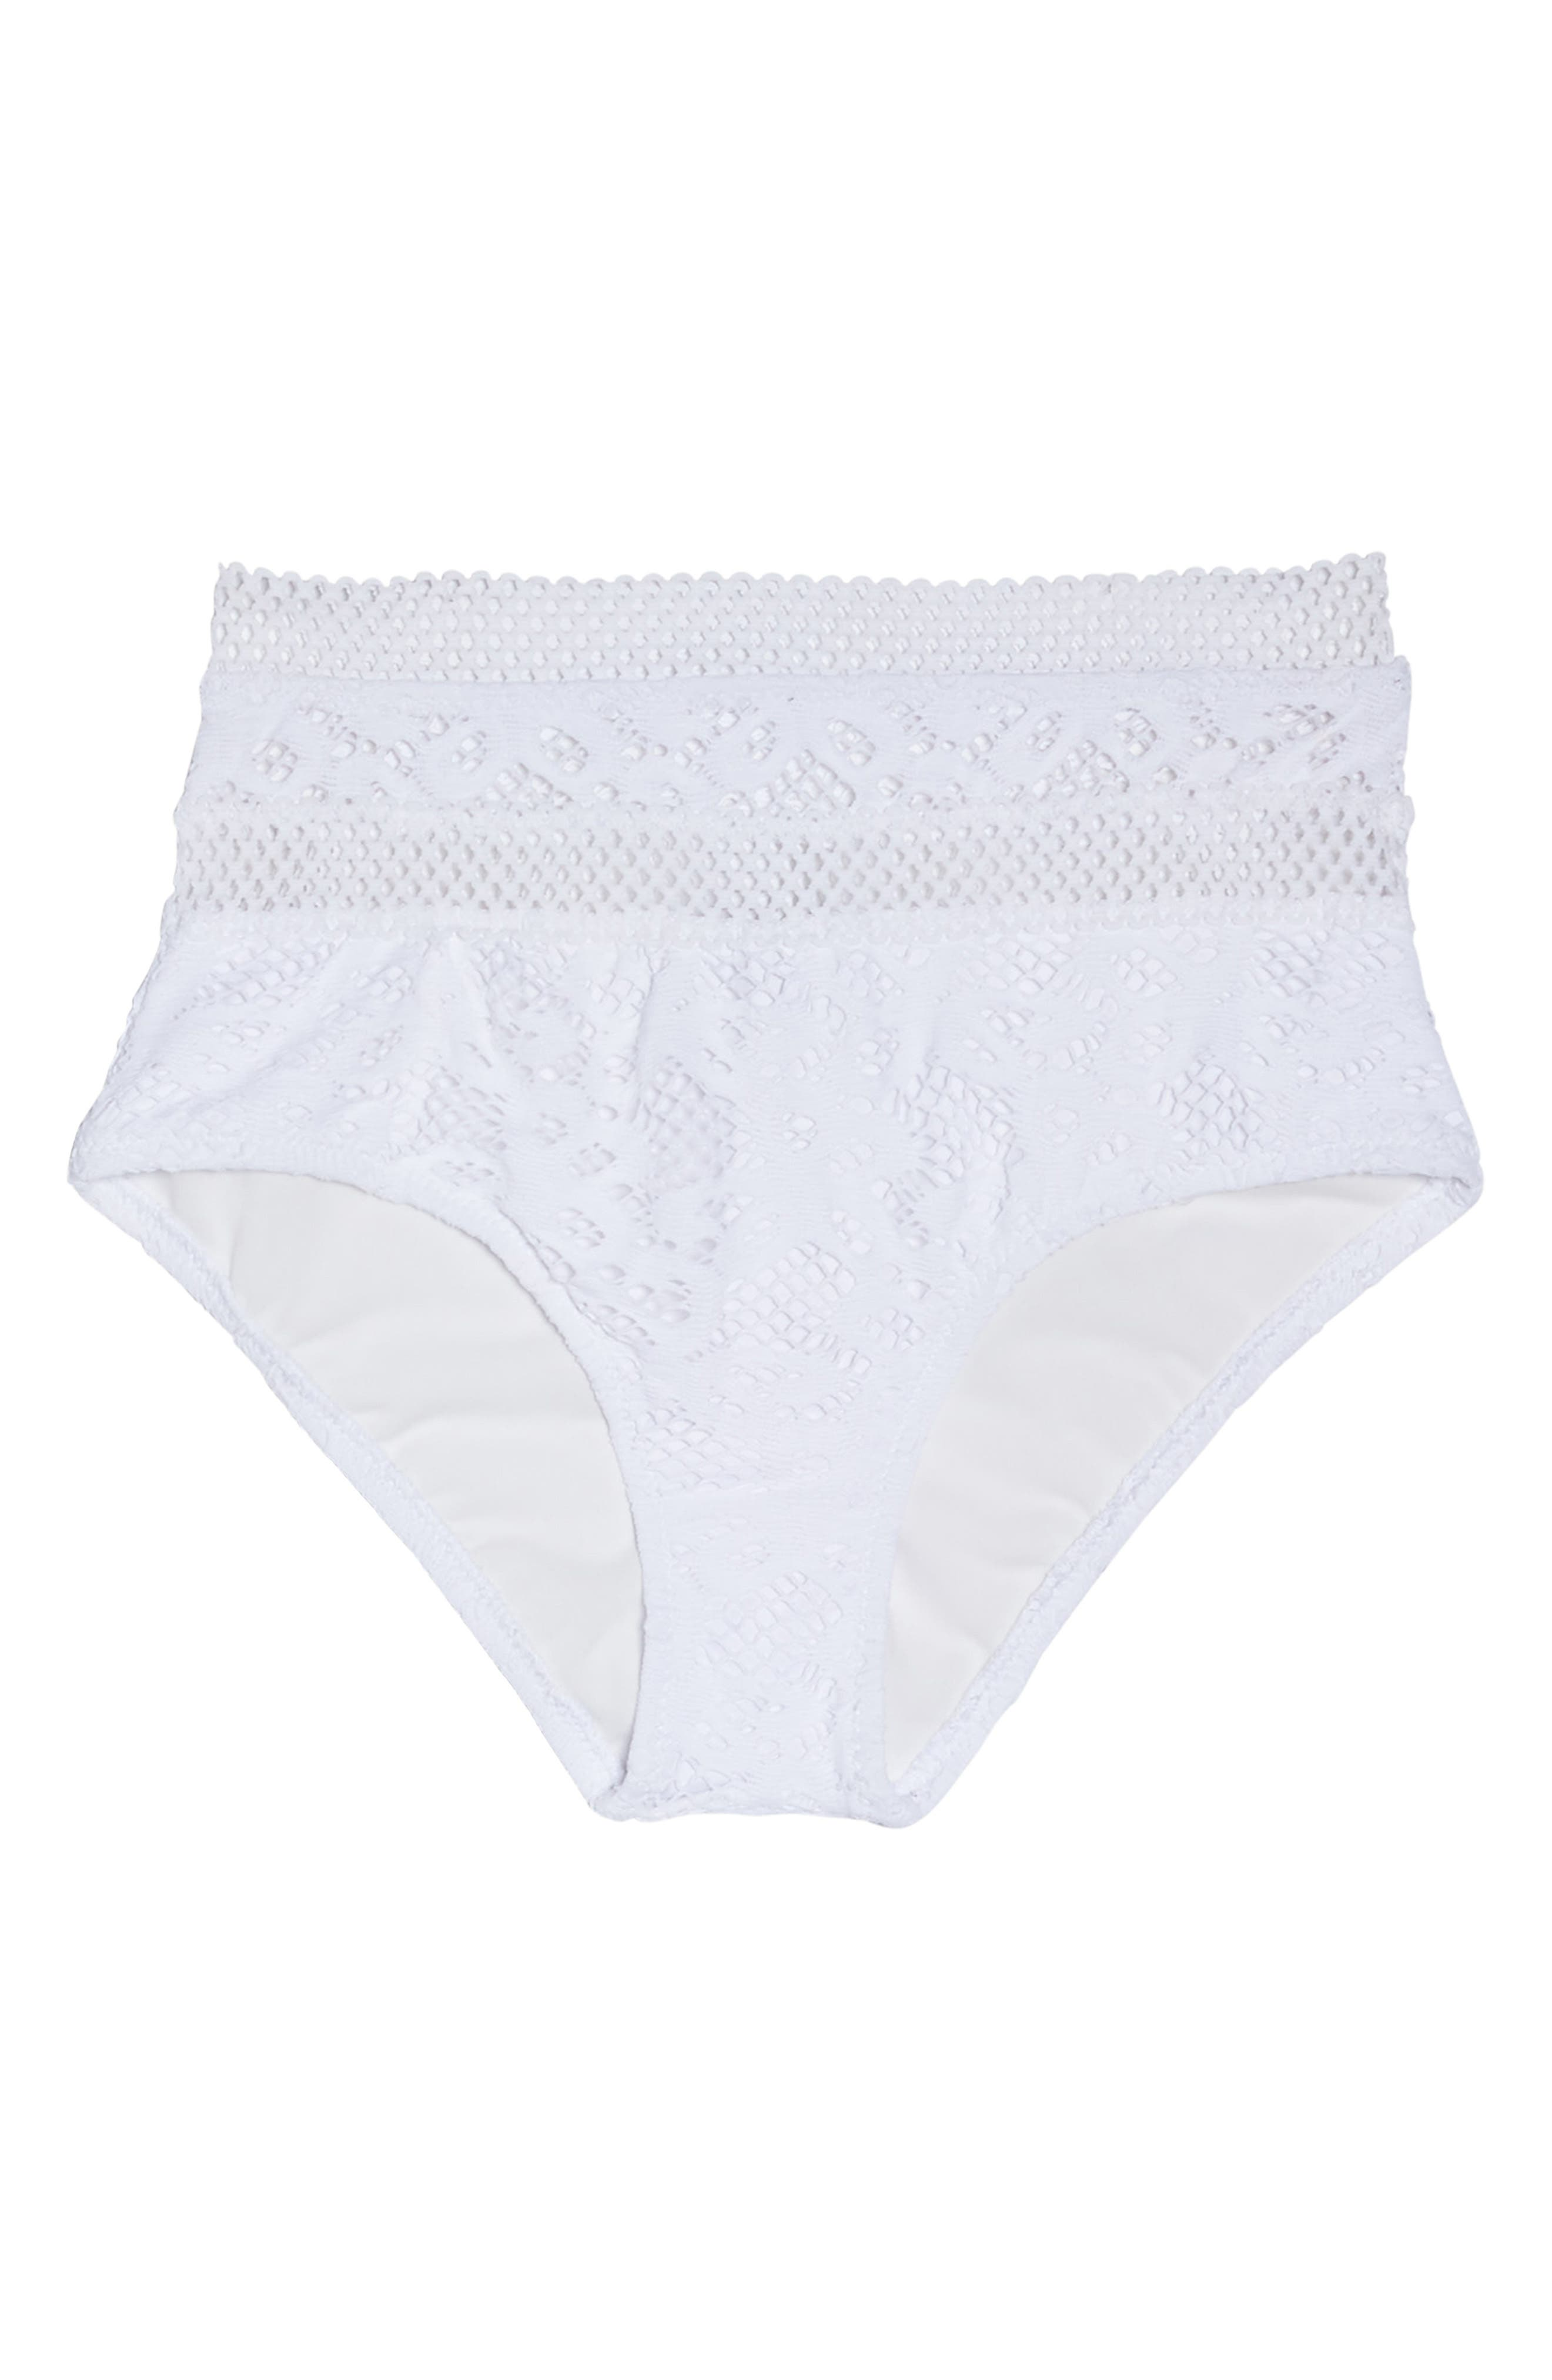 Captured High Waist Bikini Bottoms,                             Alternate thumbnail 6, color,                             White